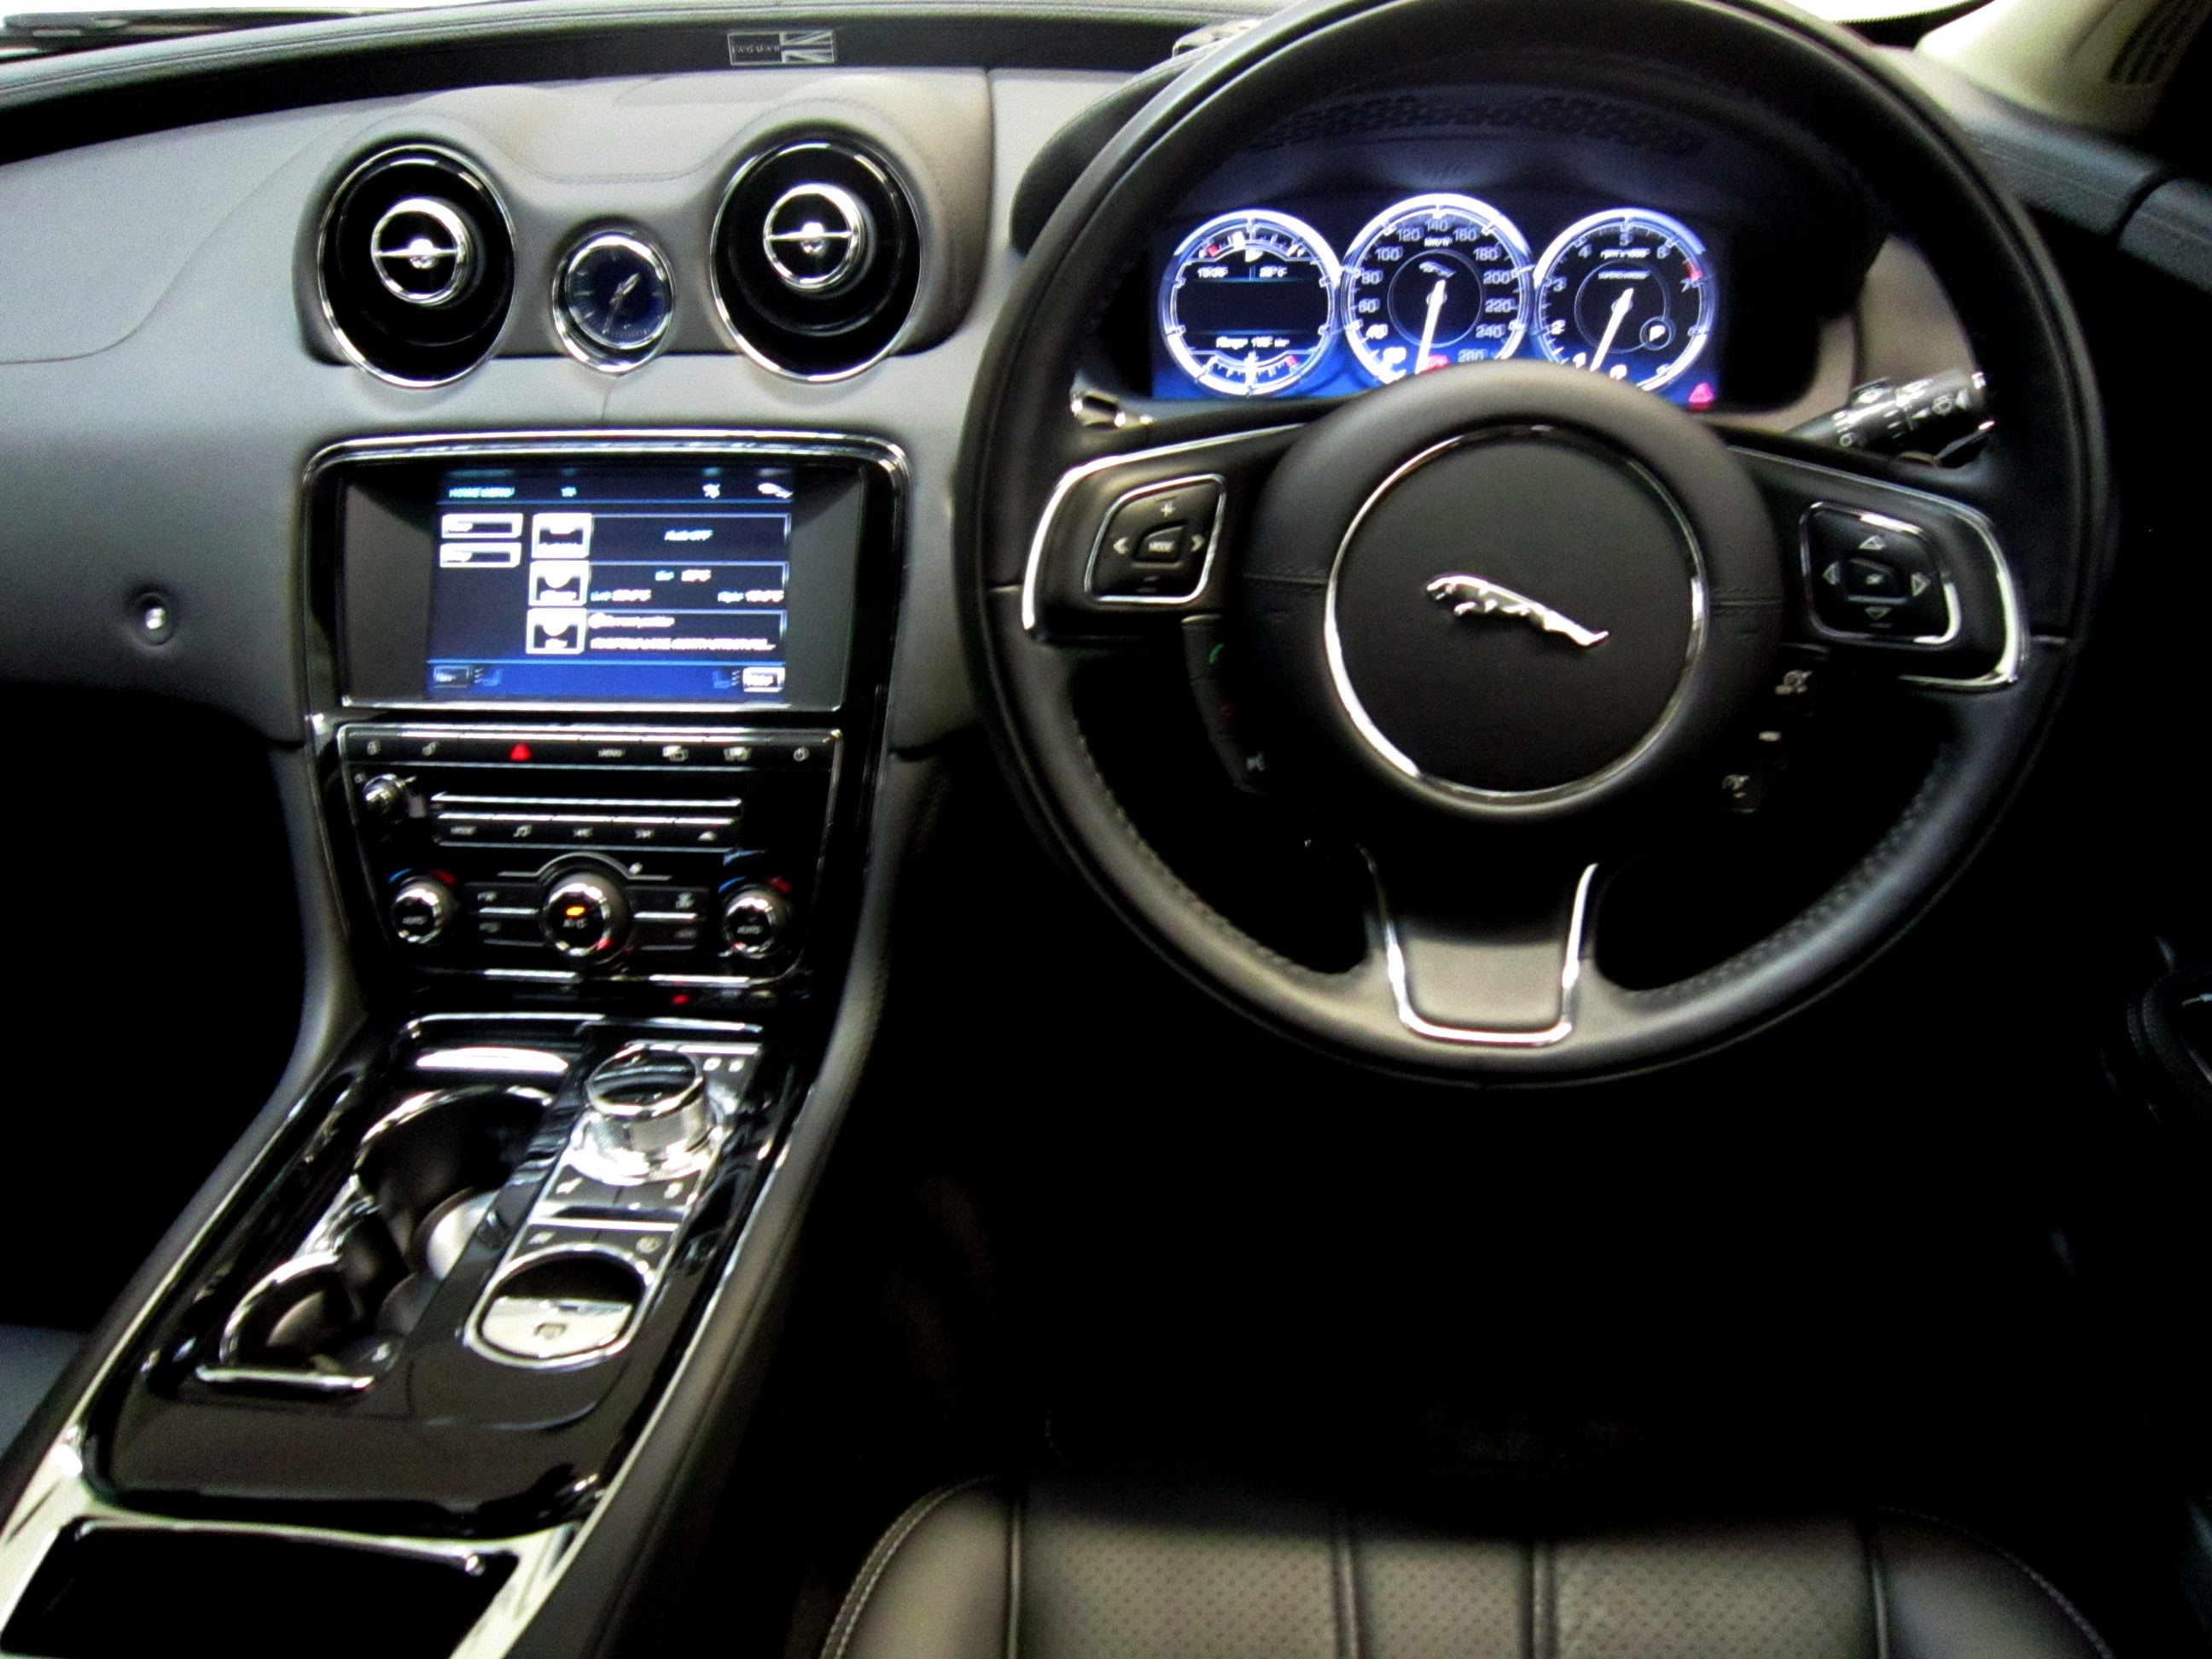 jaguar present buyacar list price prices car guide buying ftq saloon and review best deals xf